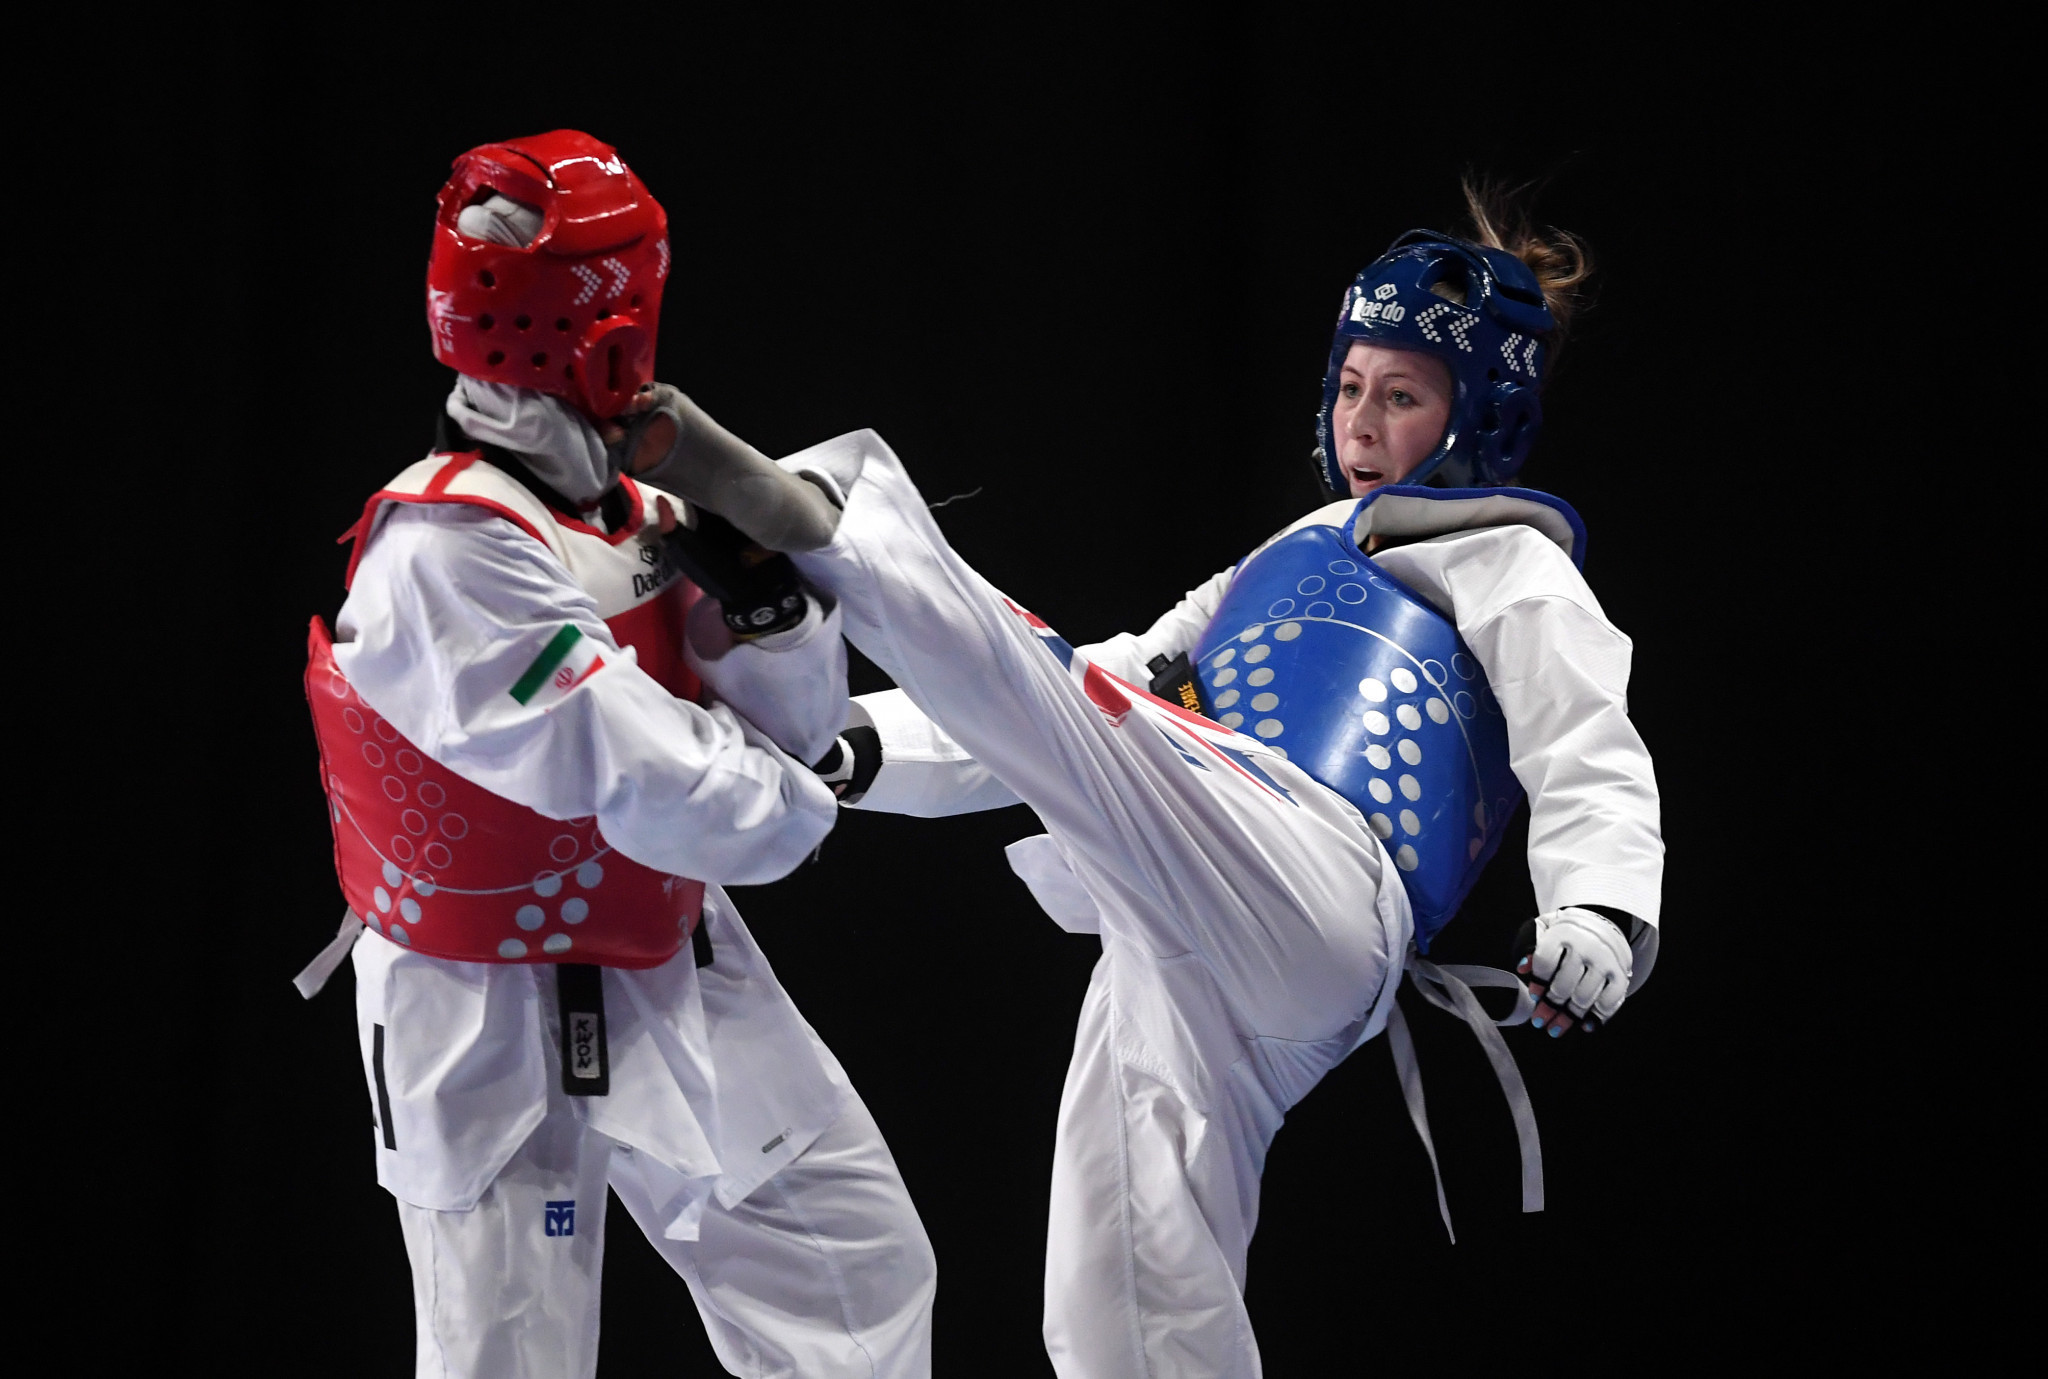 Britain's Jade Jones, in blue, will hope to defend her European title in Sofia ©Getty Images